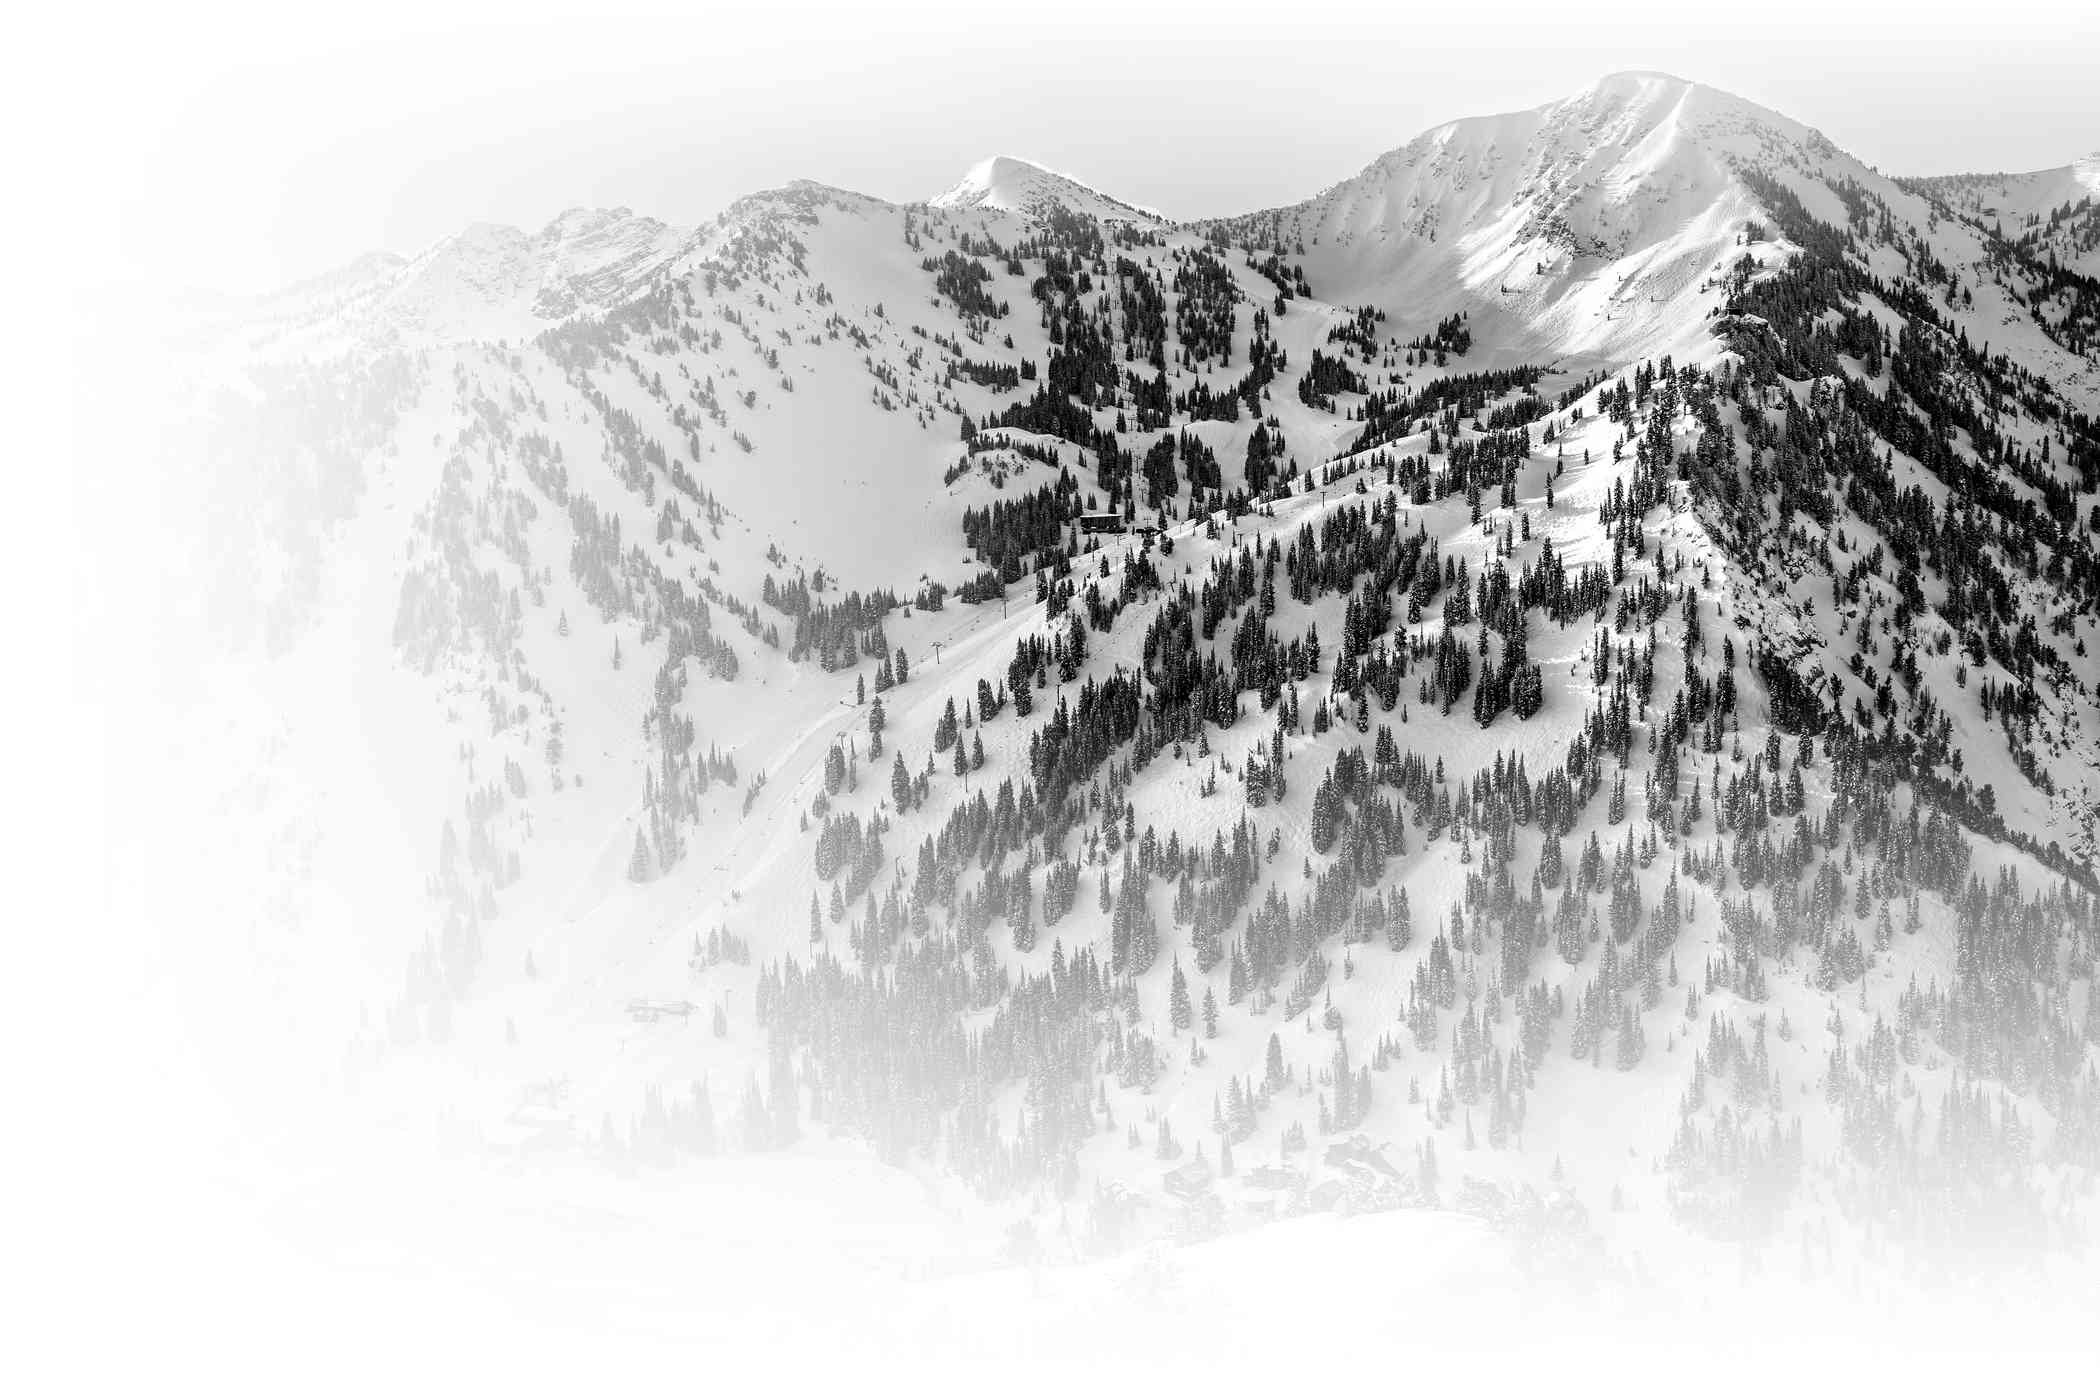 Tips for skiing Alta